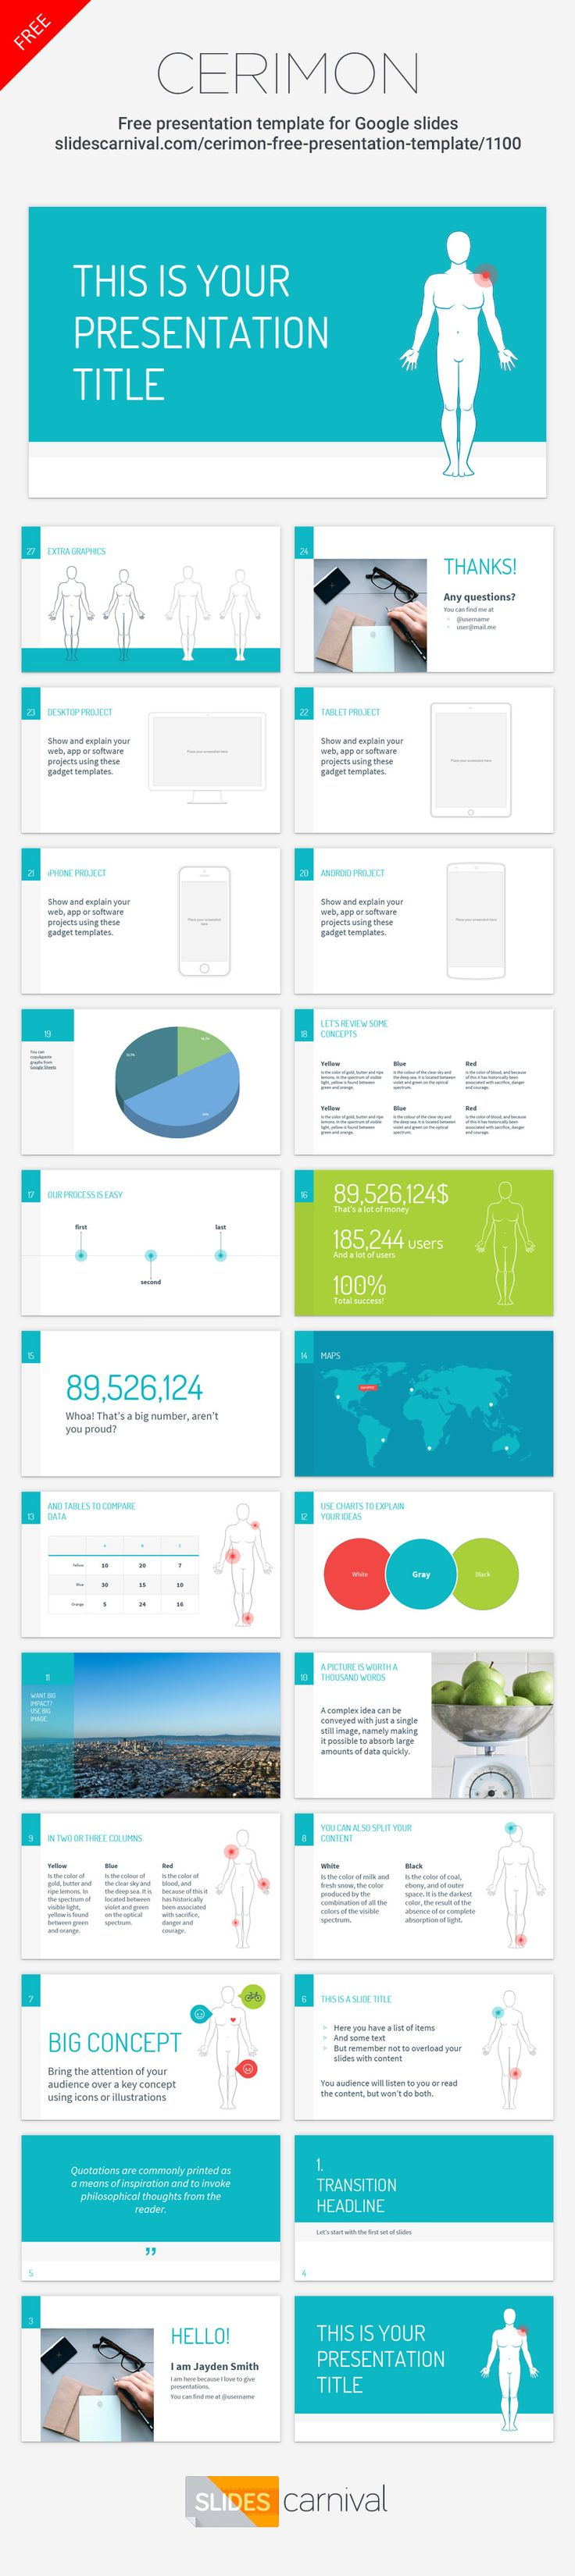 best ideas about presentation templates this presentation template is designed for medical health or fitness related topics human